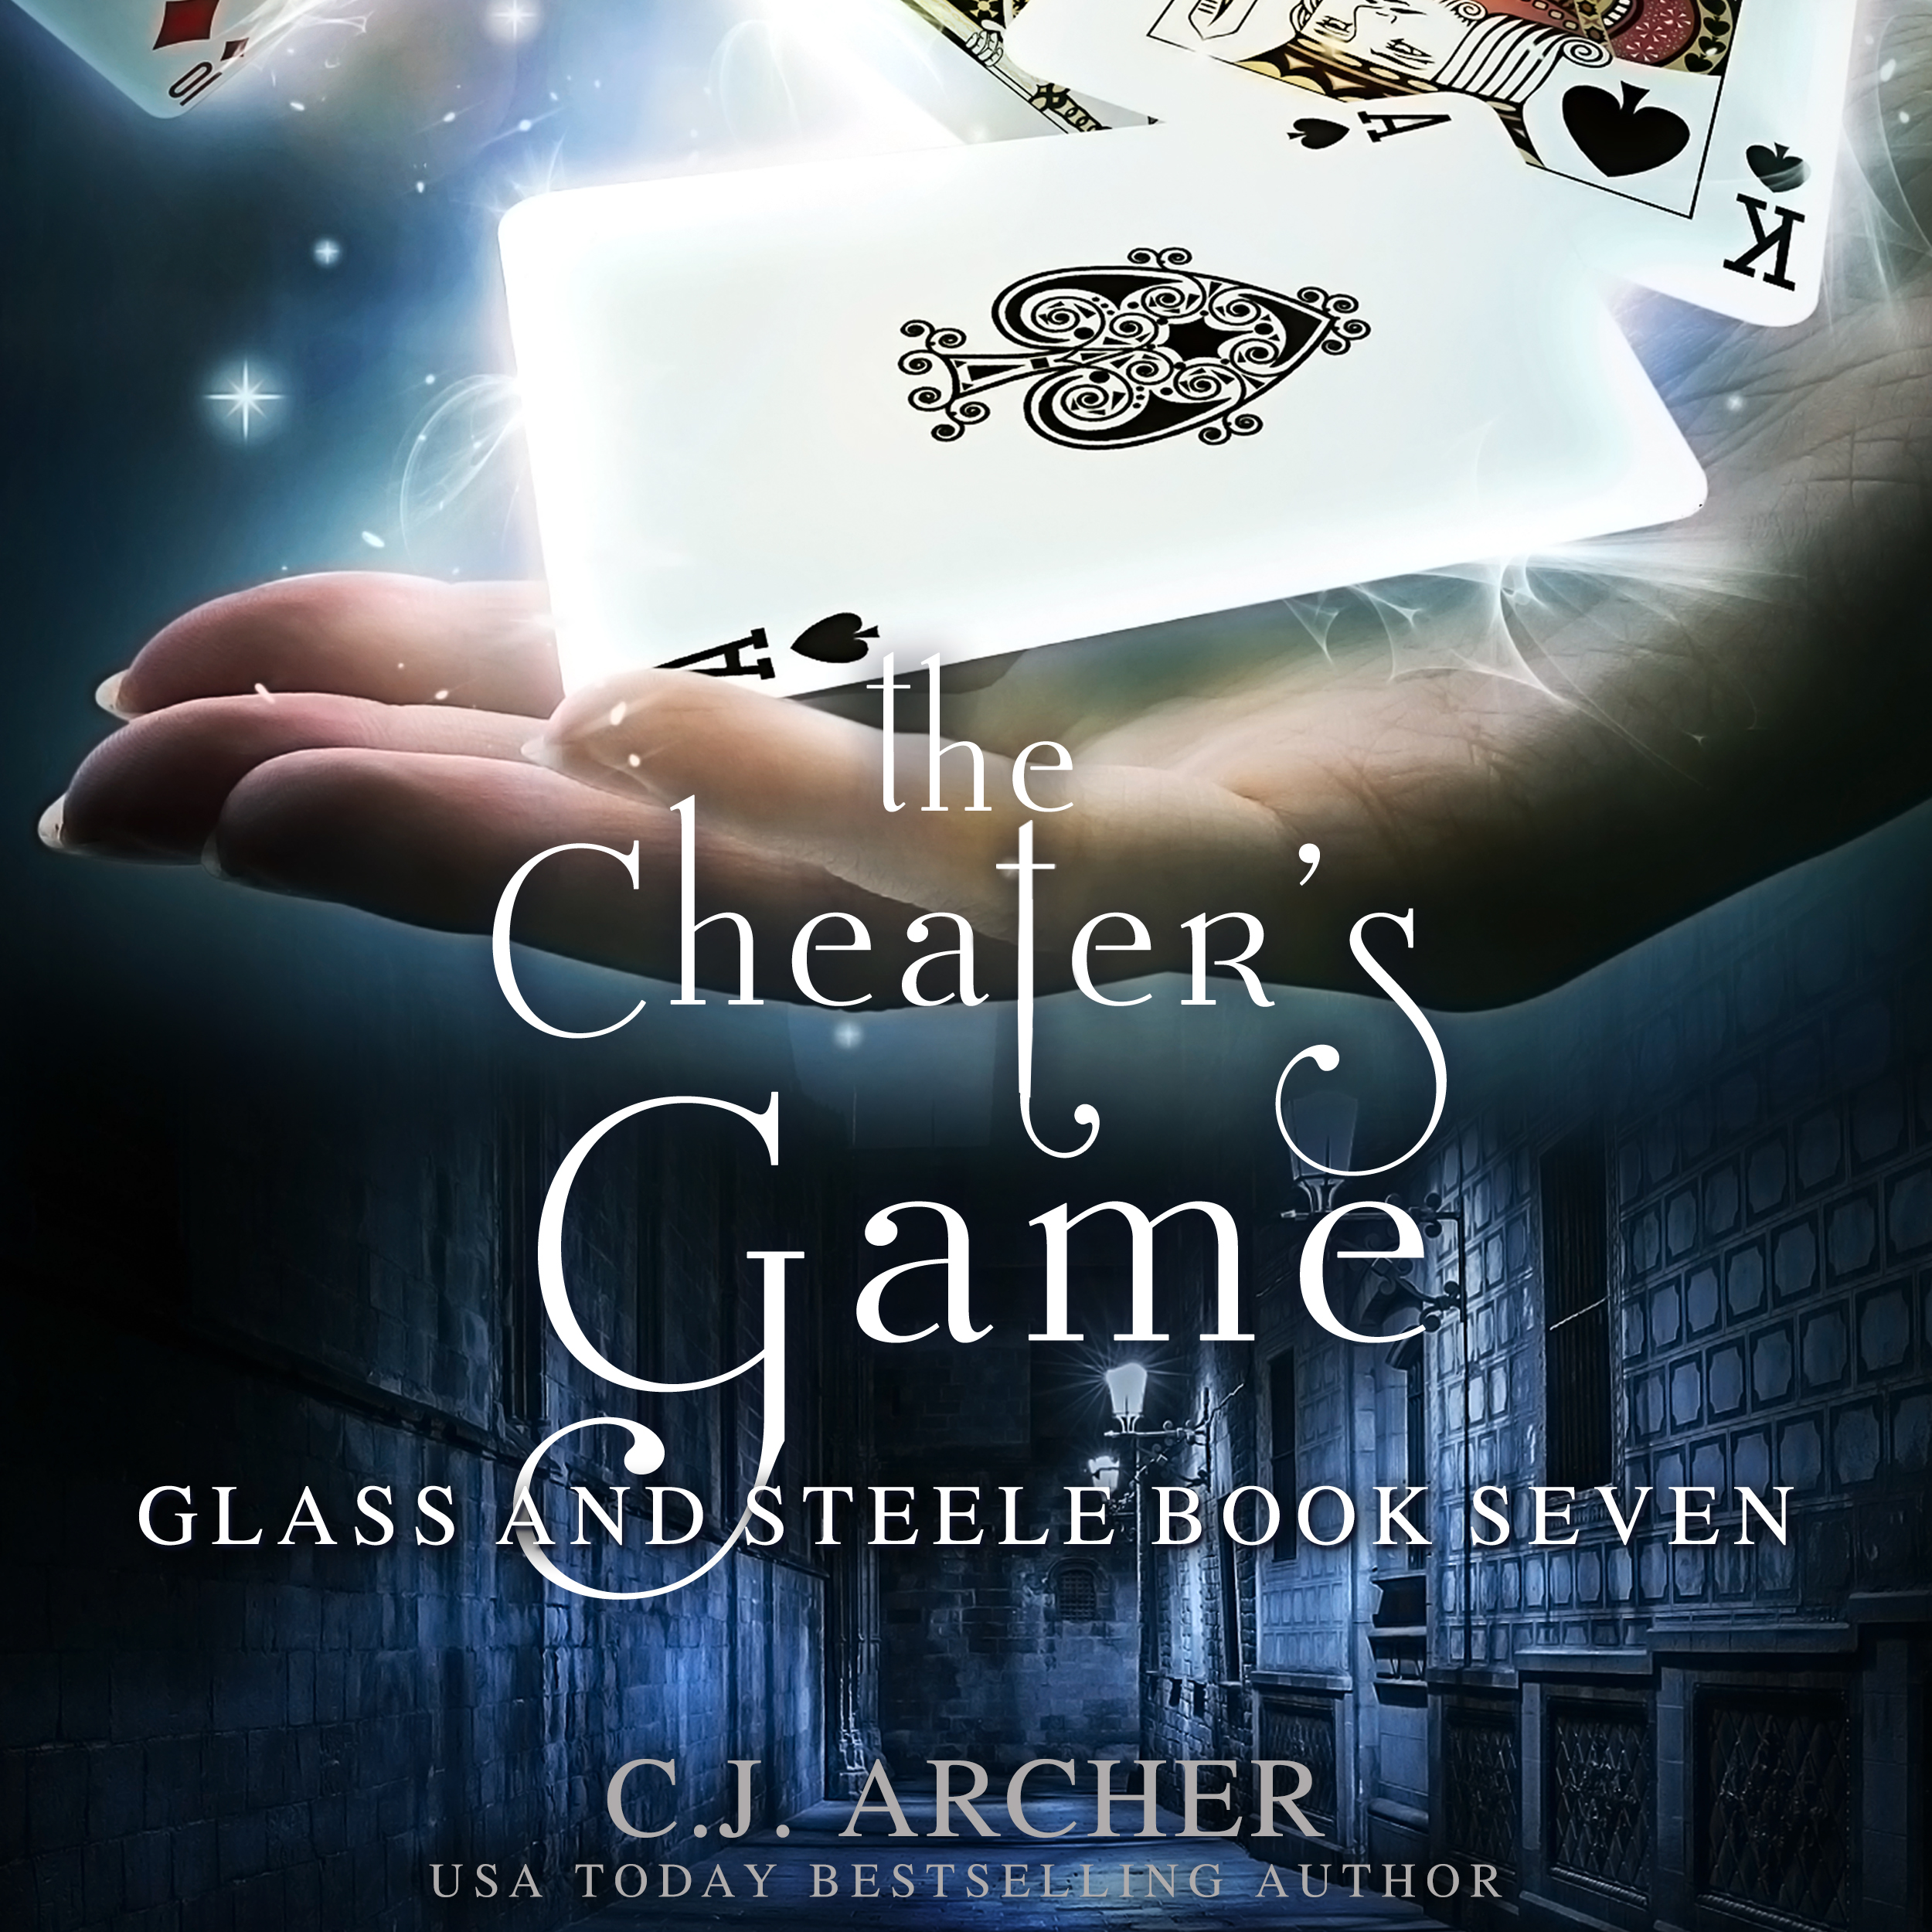 The Cheater's Game audiobook by CJ Archer